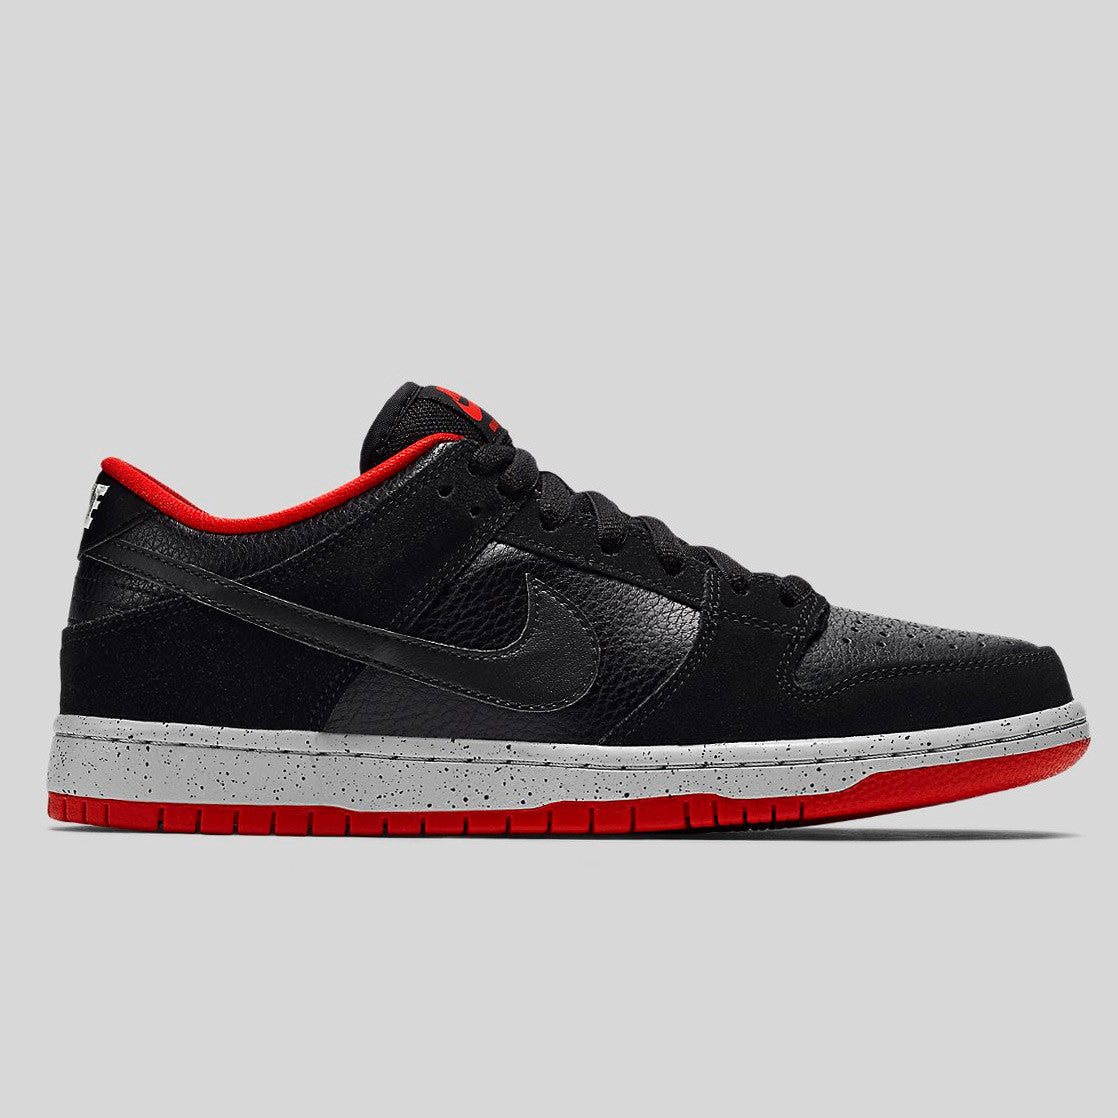 super popular 05c68 13f3c Nike Dunk Low Pro SB Bred (304292-050)   KIX-FILES